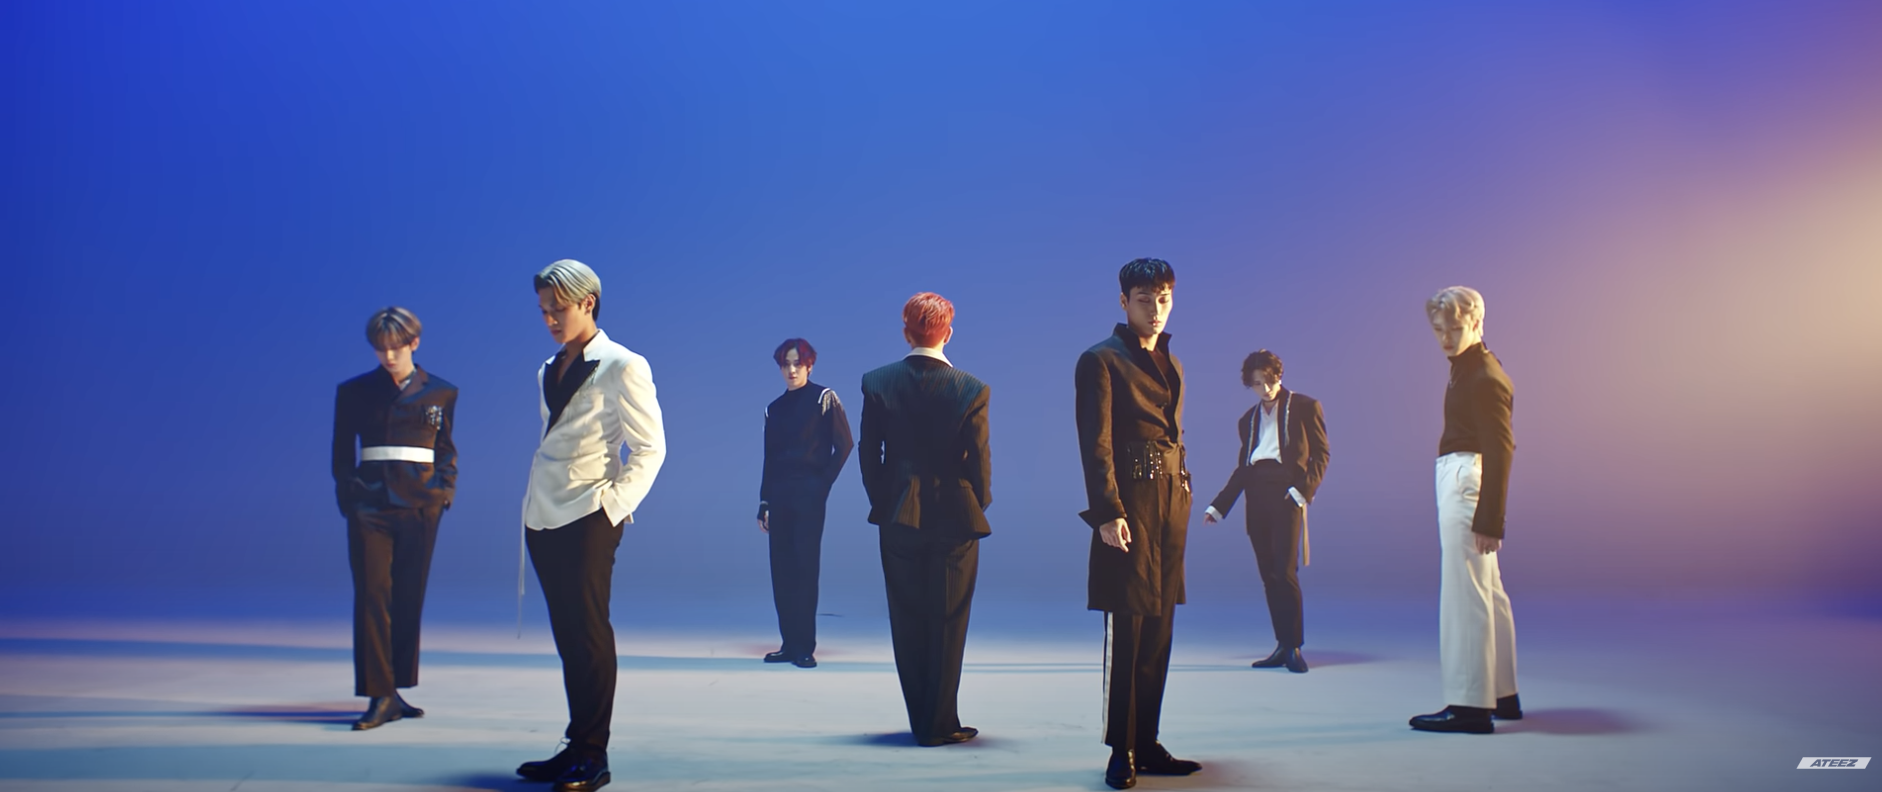 """This image is a screenshot of K-Pop boyband, ATEEZ, from their performance video for their song """"Deja Vu"""". In front of a blue tinted background, they are standing at different points of the room all dressed in formal attire."""